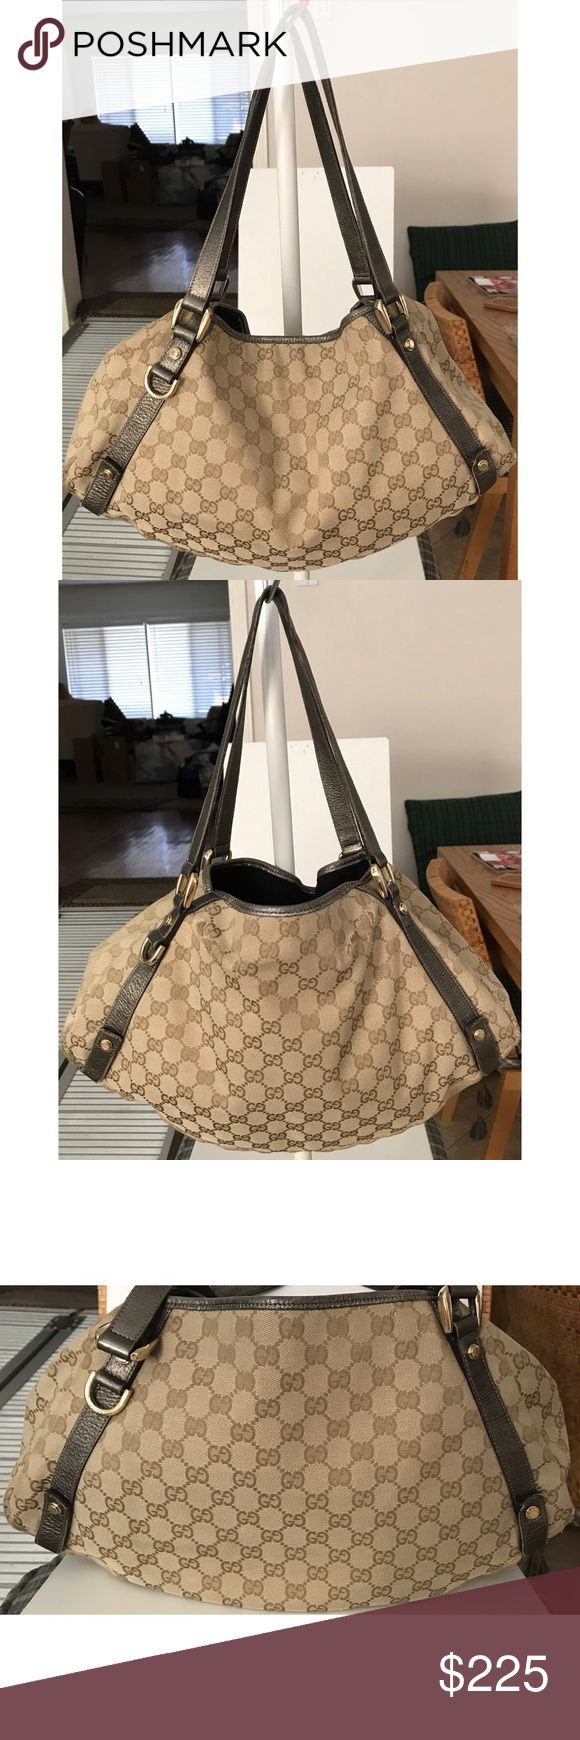 """💯Authentic Gucci GG Monogram Abbey Shoulder Bag 100% authentic Gucci Abbey beige and brown monogram GG bag with metallic trim. Made in Italy, L15.5"""" x H9.4"""" x D5"""", strap drop 8."""" Interior pocket zipper and snap button for main compartment works properly. Exterior has heavy scuffs/frays on bottom corner edges and backside (not holes). Leather trim/straps have normal signs of use and minor scuffs. Interior has light surface wear and minor dirt marks. View all pictures closely for signs of…"""